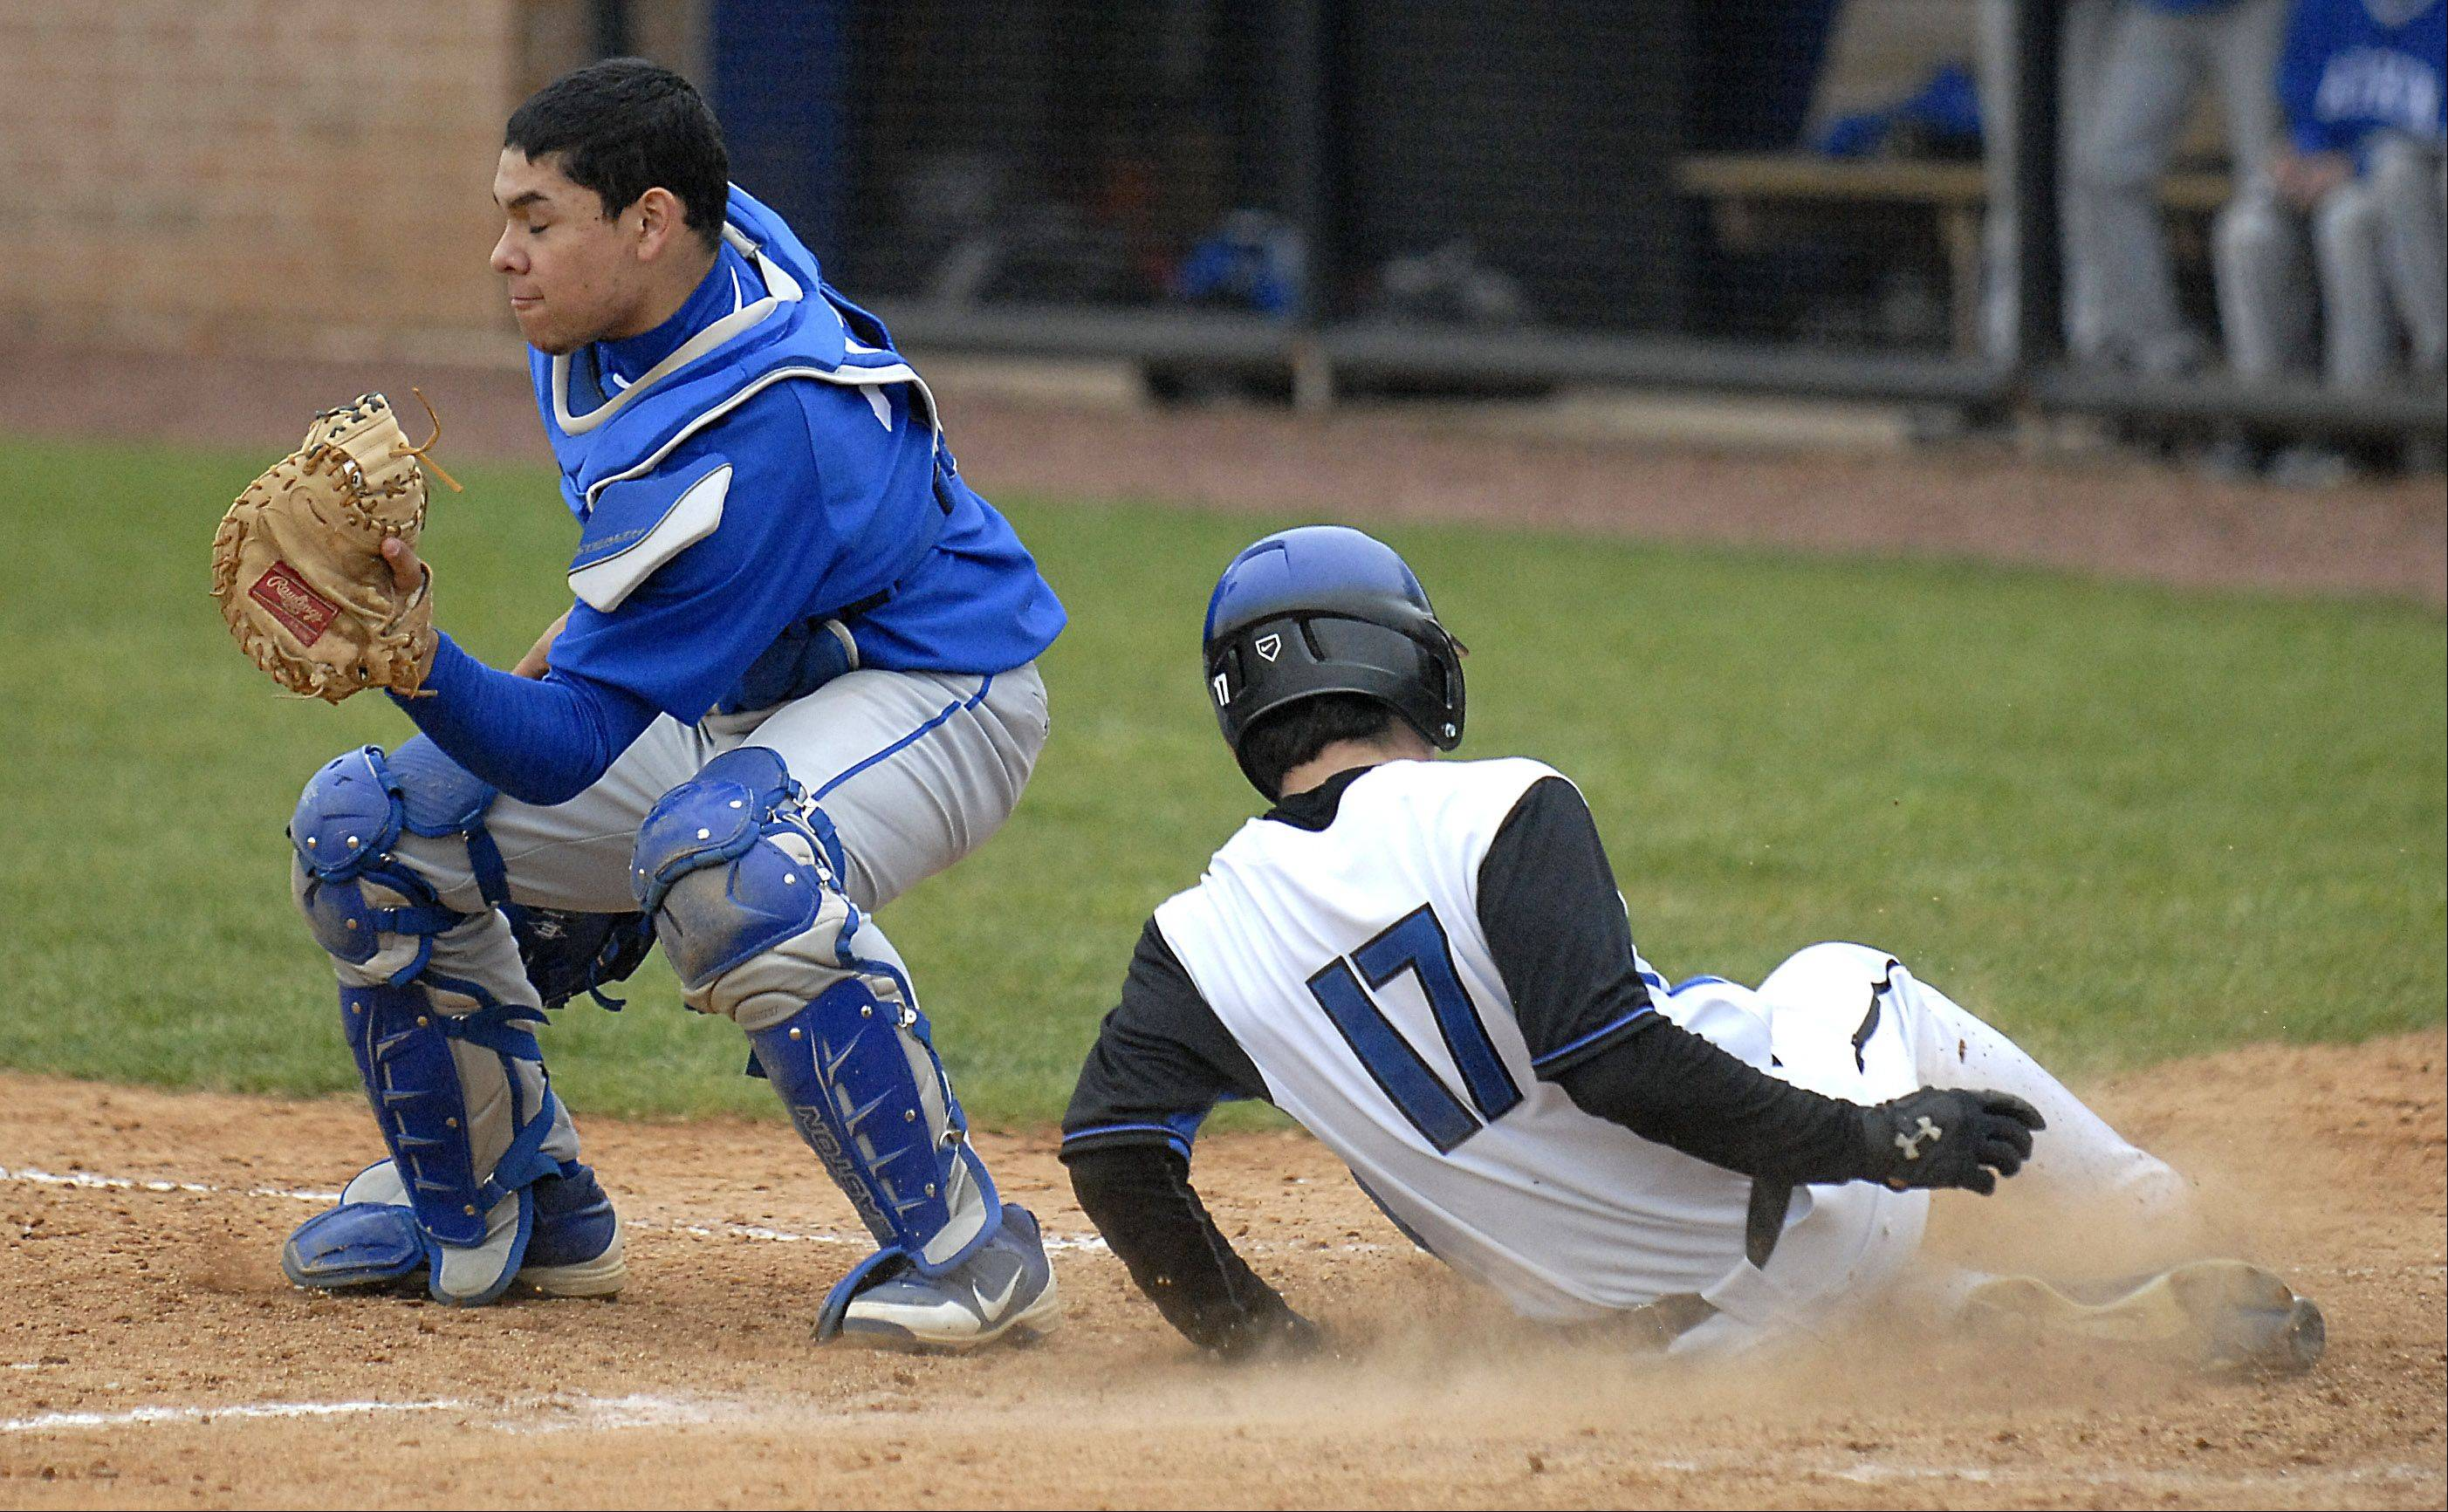 St. Charles North's Erik Nelson slides safely into home before Larkin catcher Niko Morado can tag him out during a game last season.